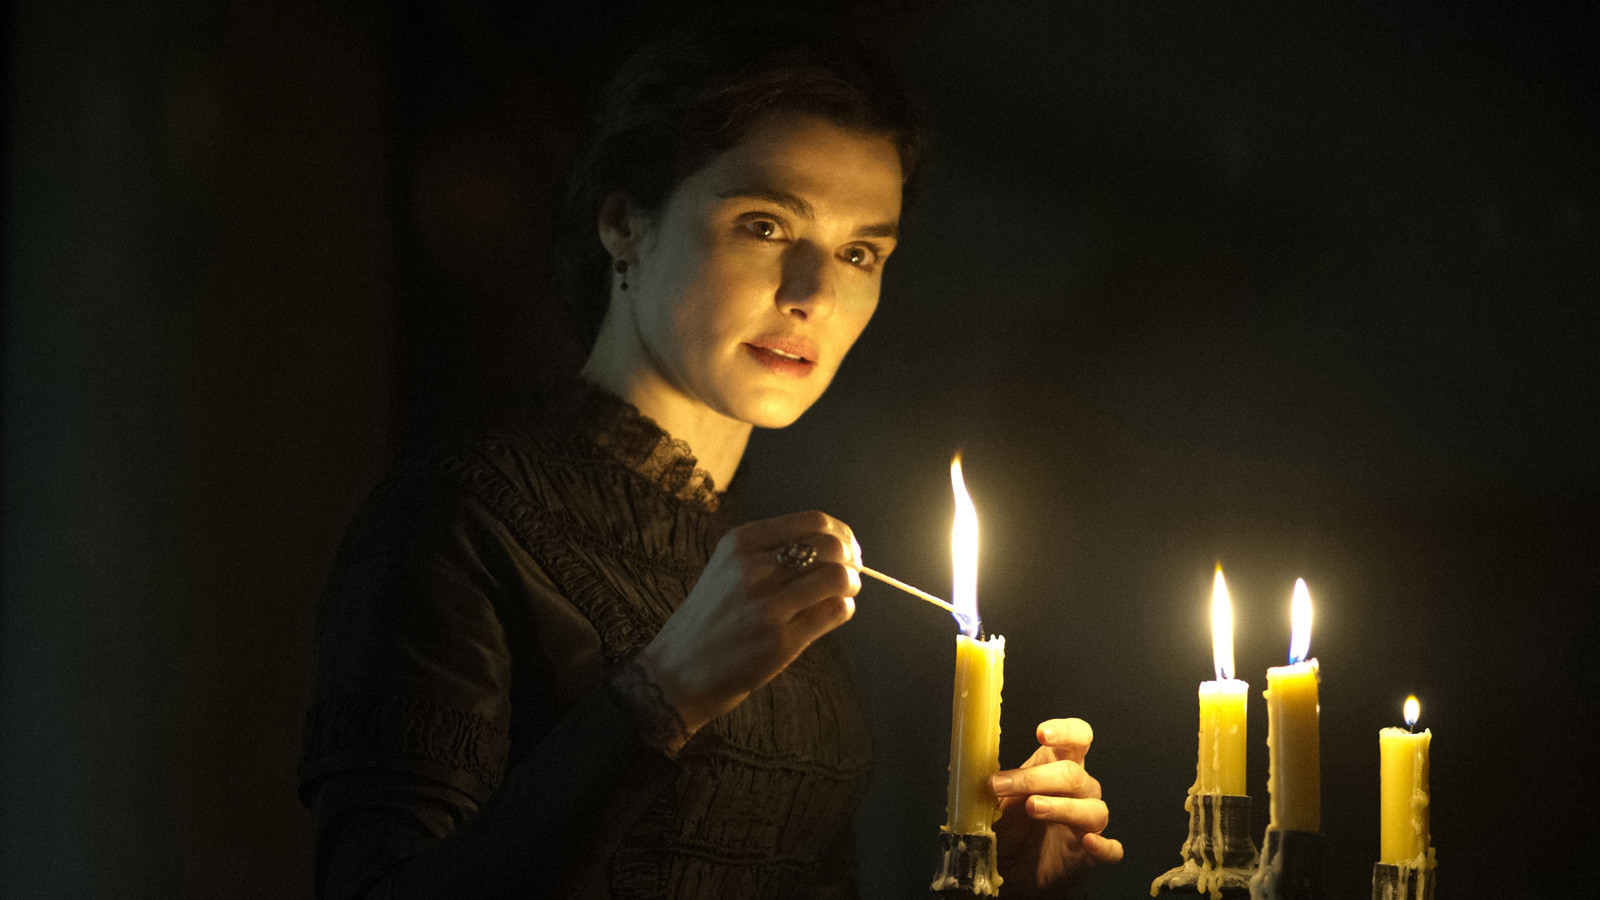 Rachel Weisz beguiles in Roger Michell's romantic thriller 'My Cousin Rachel'